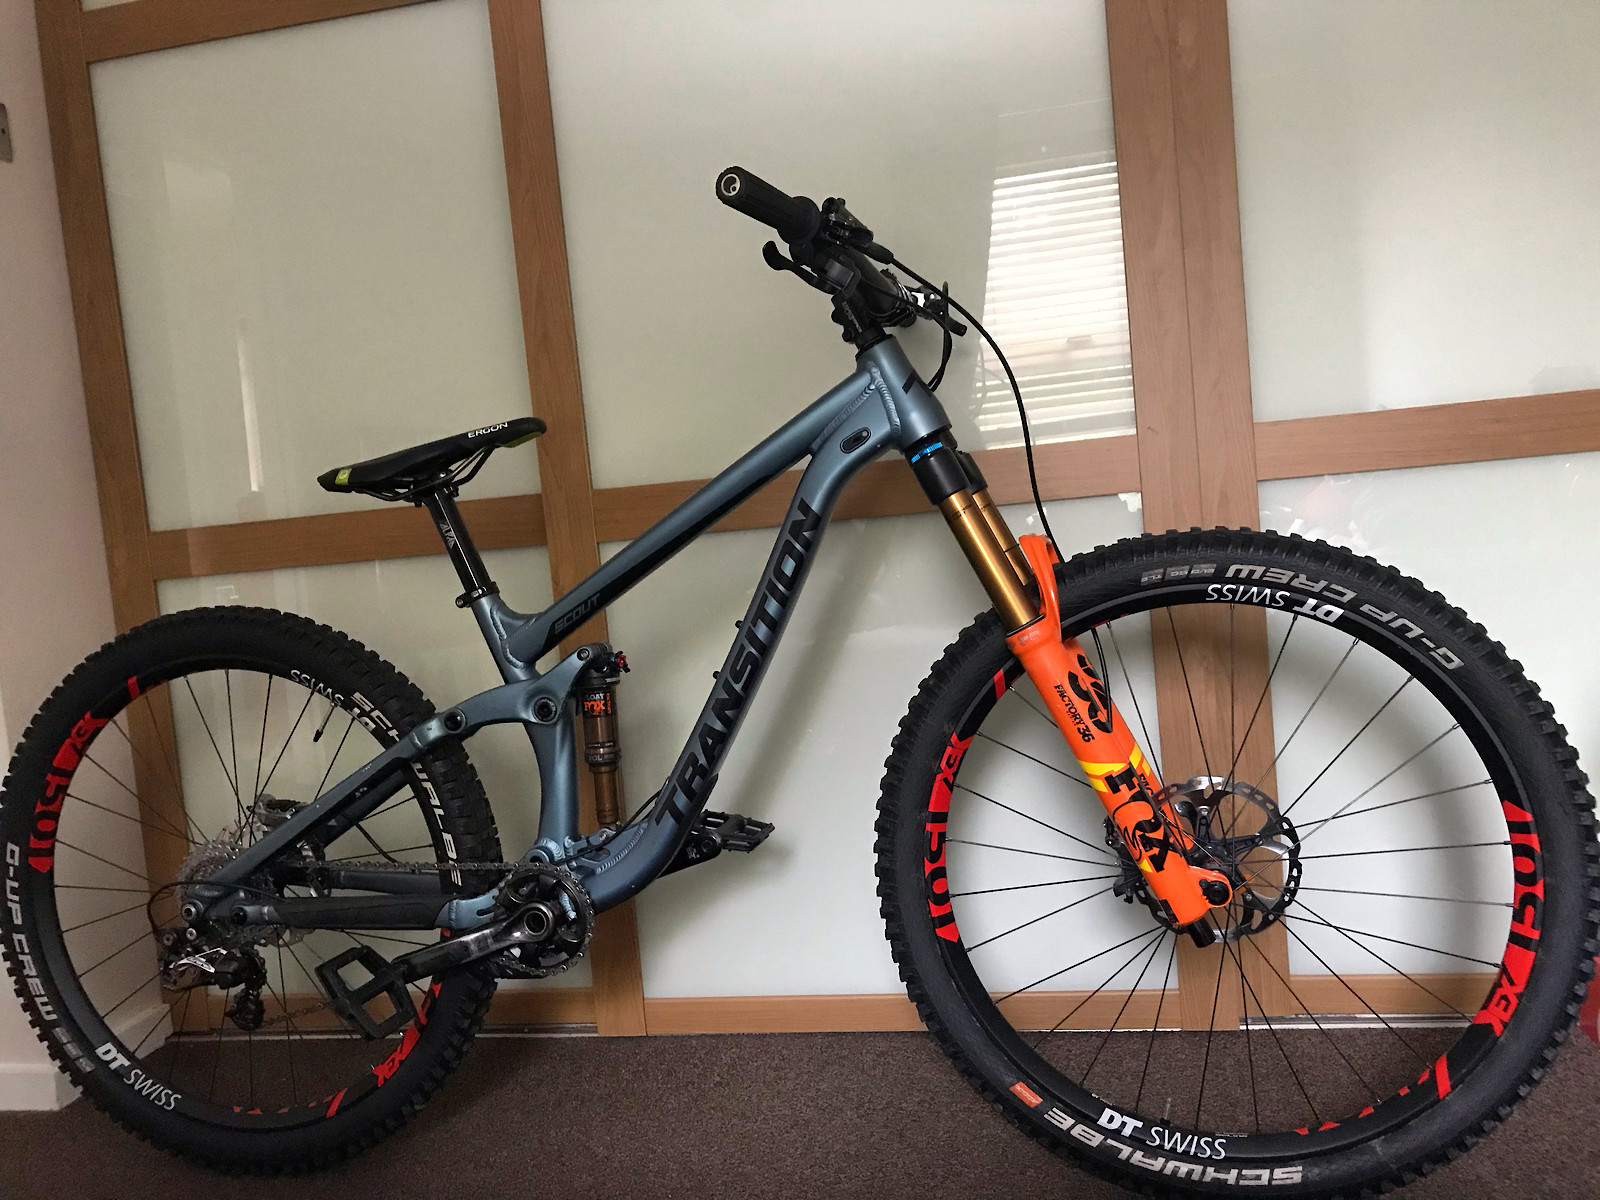 2019 Transition Scout custom